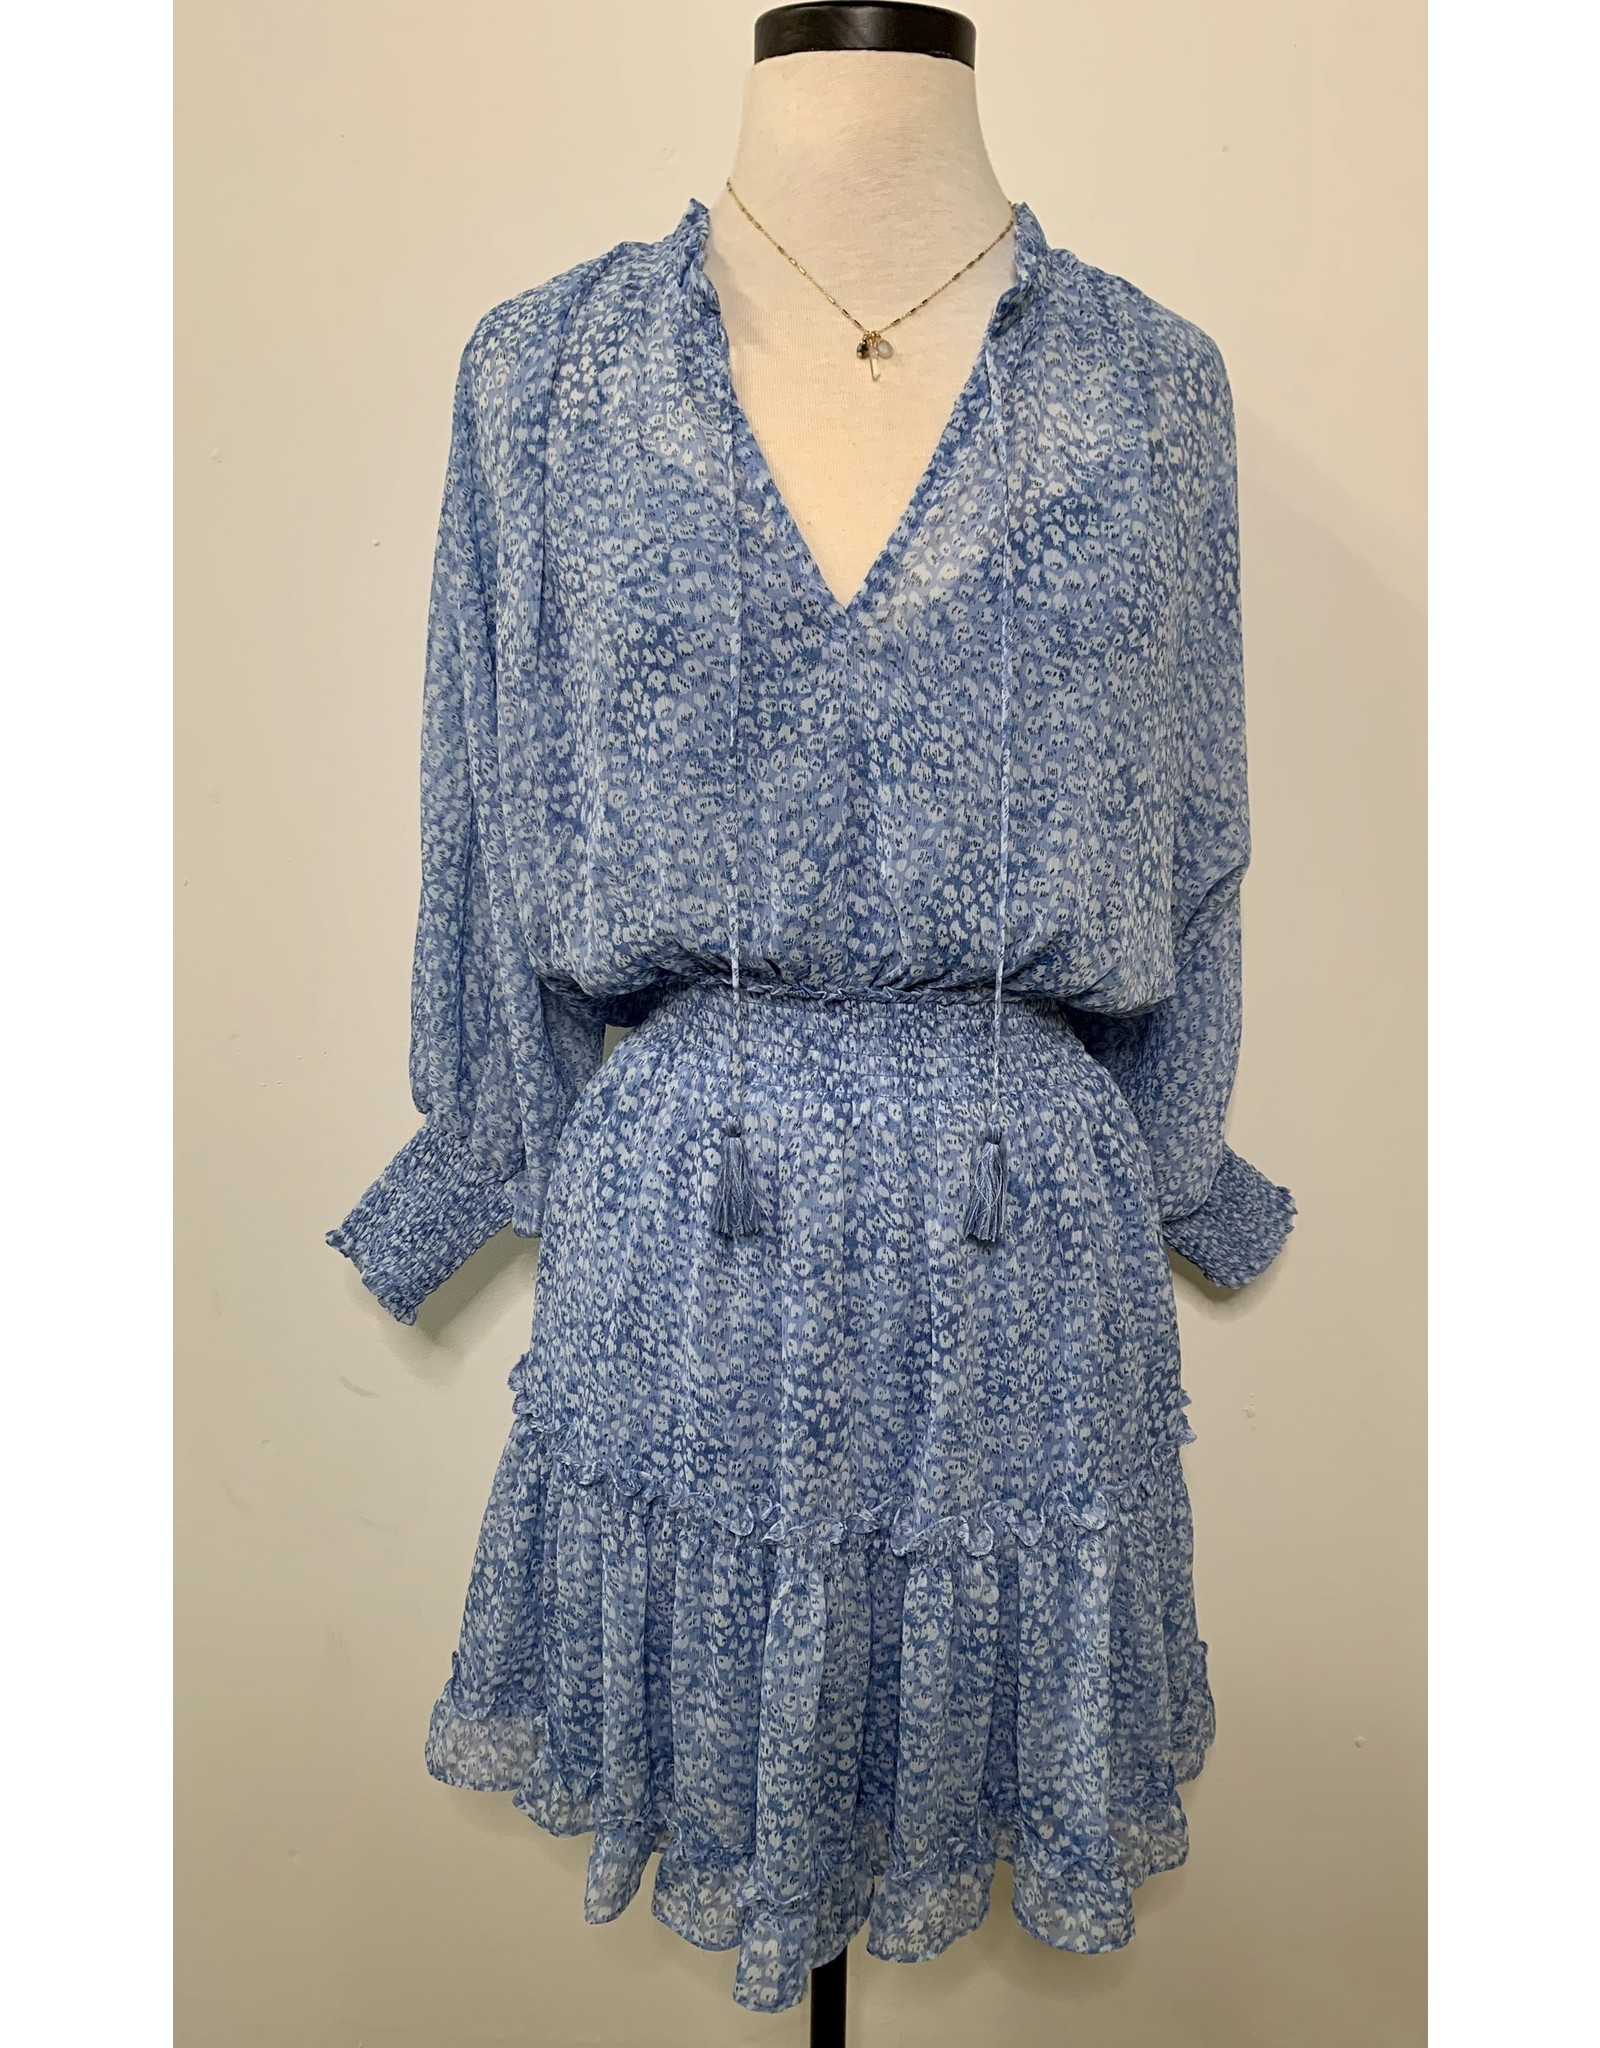 RAMA DOLMAN SLEEVE DRESS